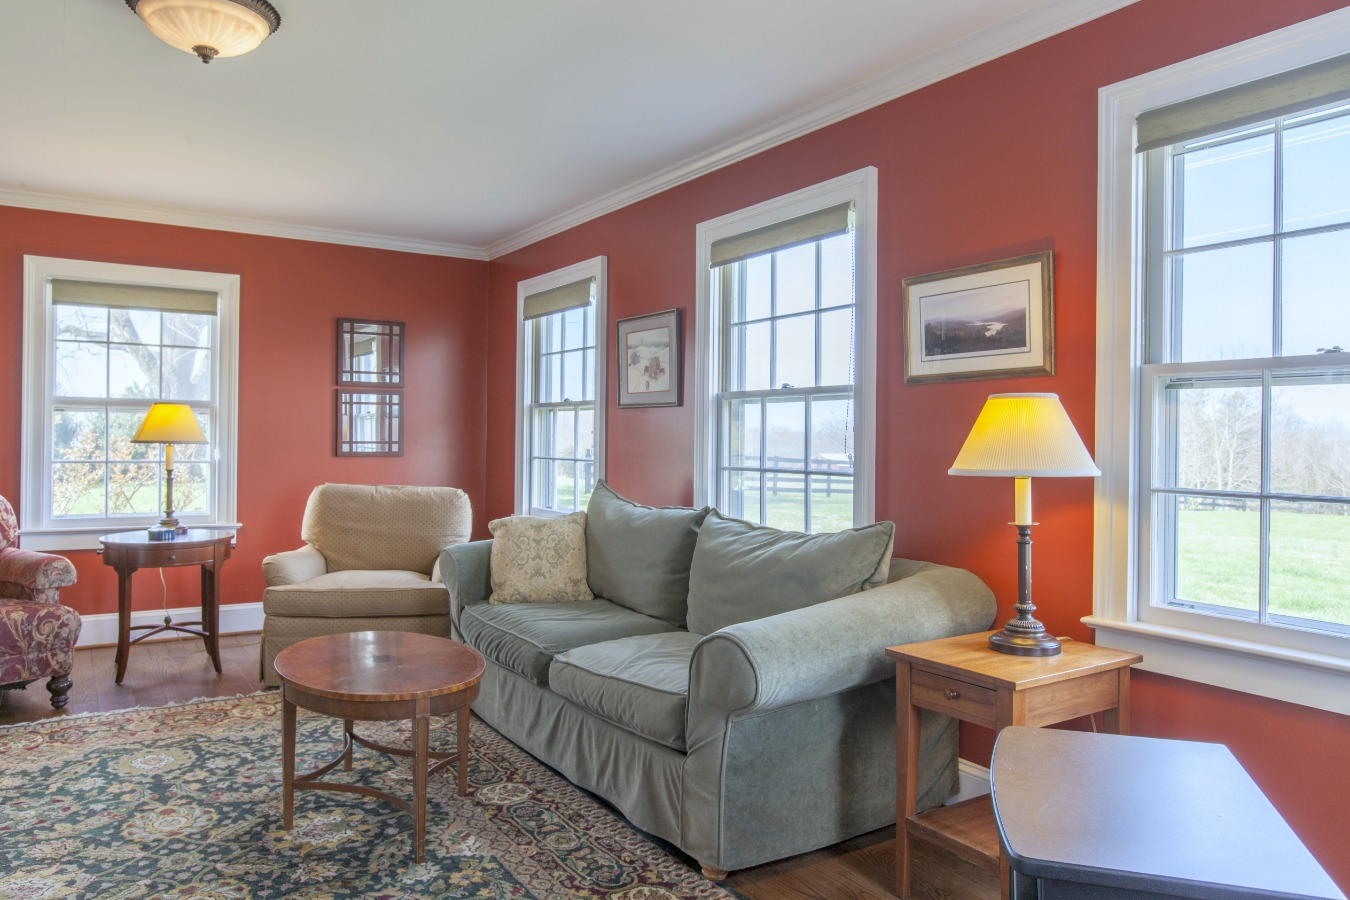 Spacious Family room looks out to the back yard